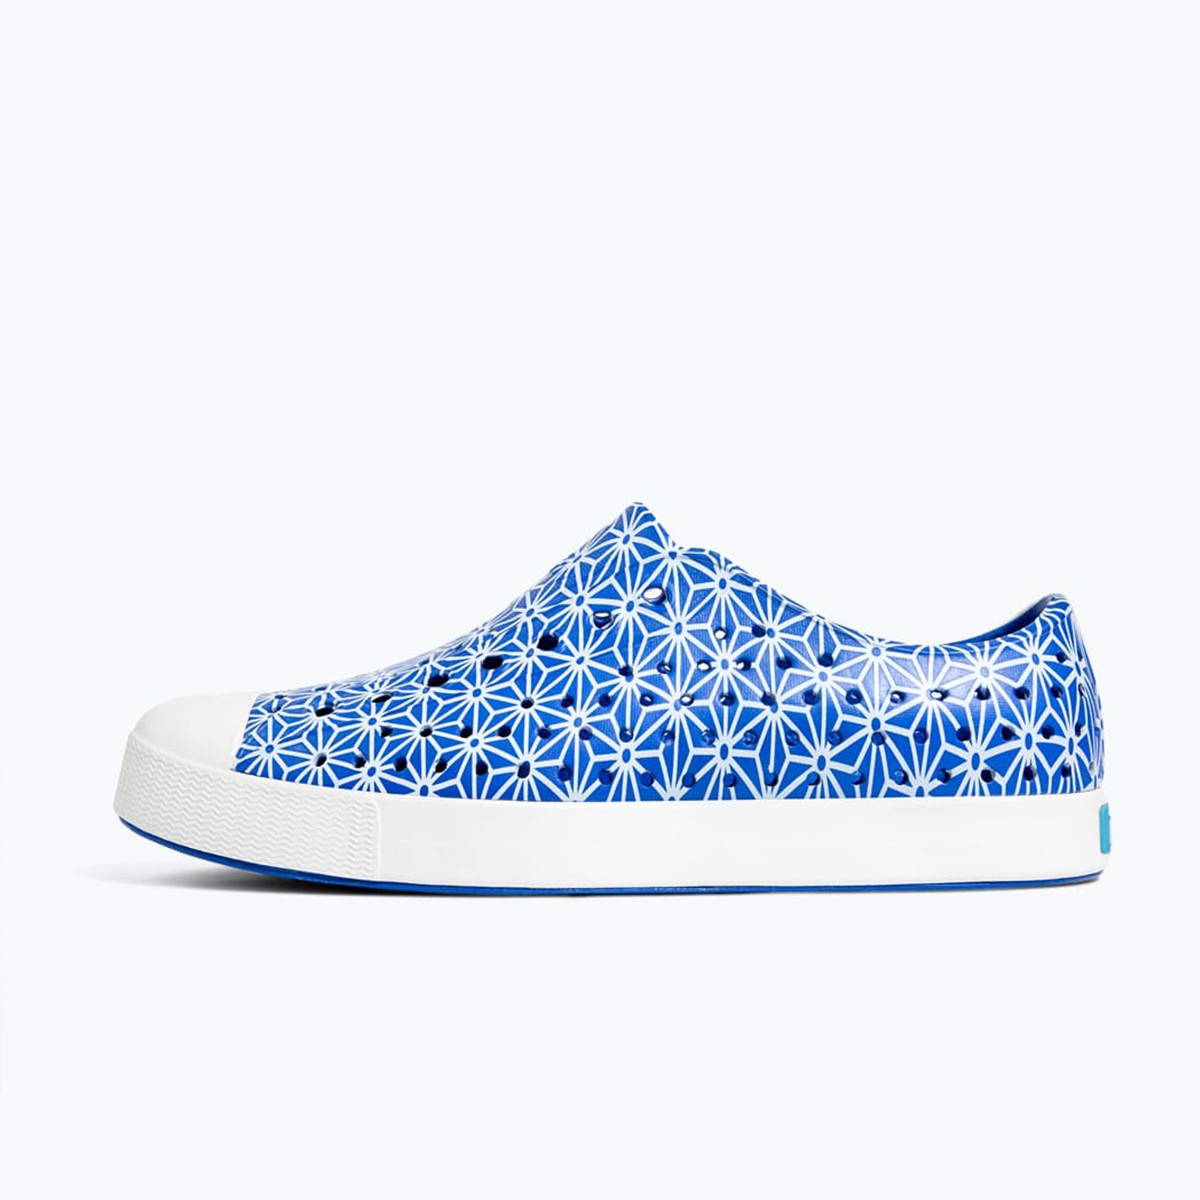 GIÀY NATIVE AD JEFFERSON PRINT (11100101) UV BLUE/ SHELL WHITE/ ASANOHA